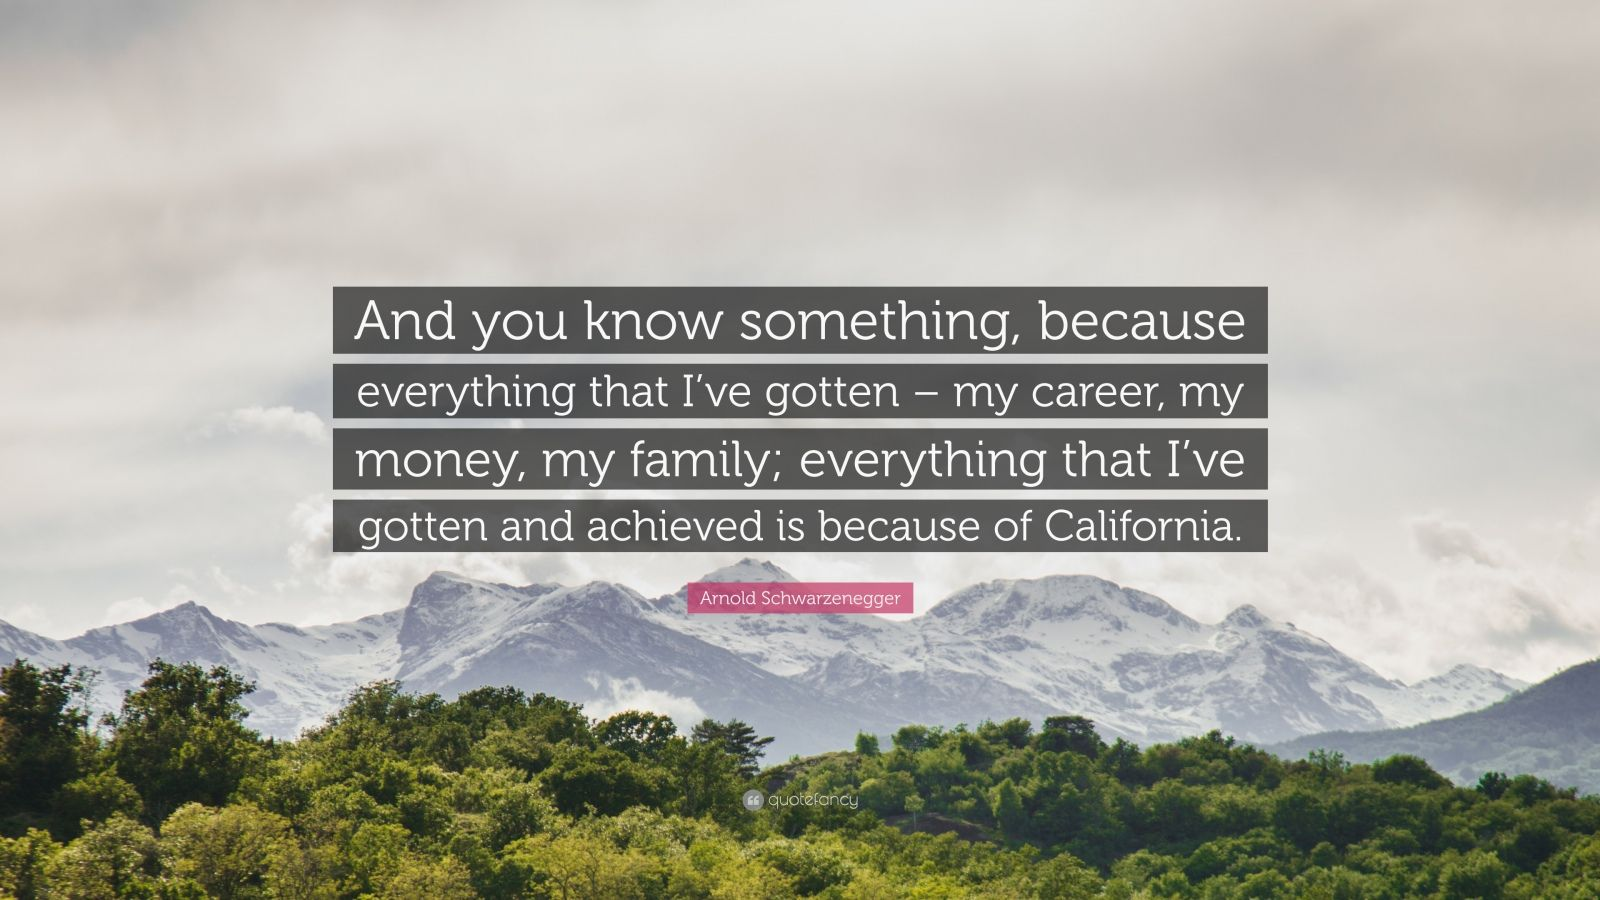 """Arnold Schwarzenegger Quote: """"And you know something, because everything that I've gotten – my career, my money, my family; everything that I've gotten and achieved is because of California."""""""